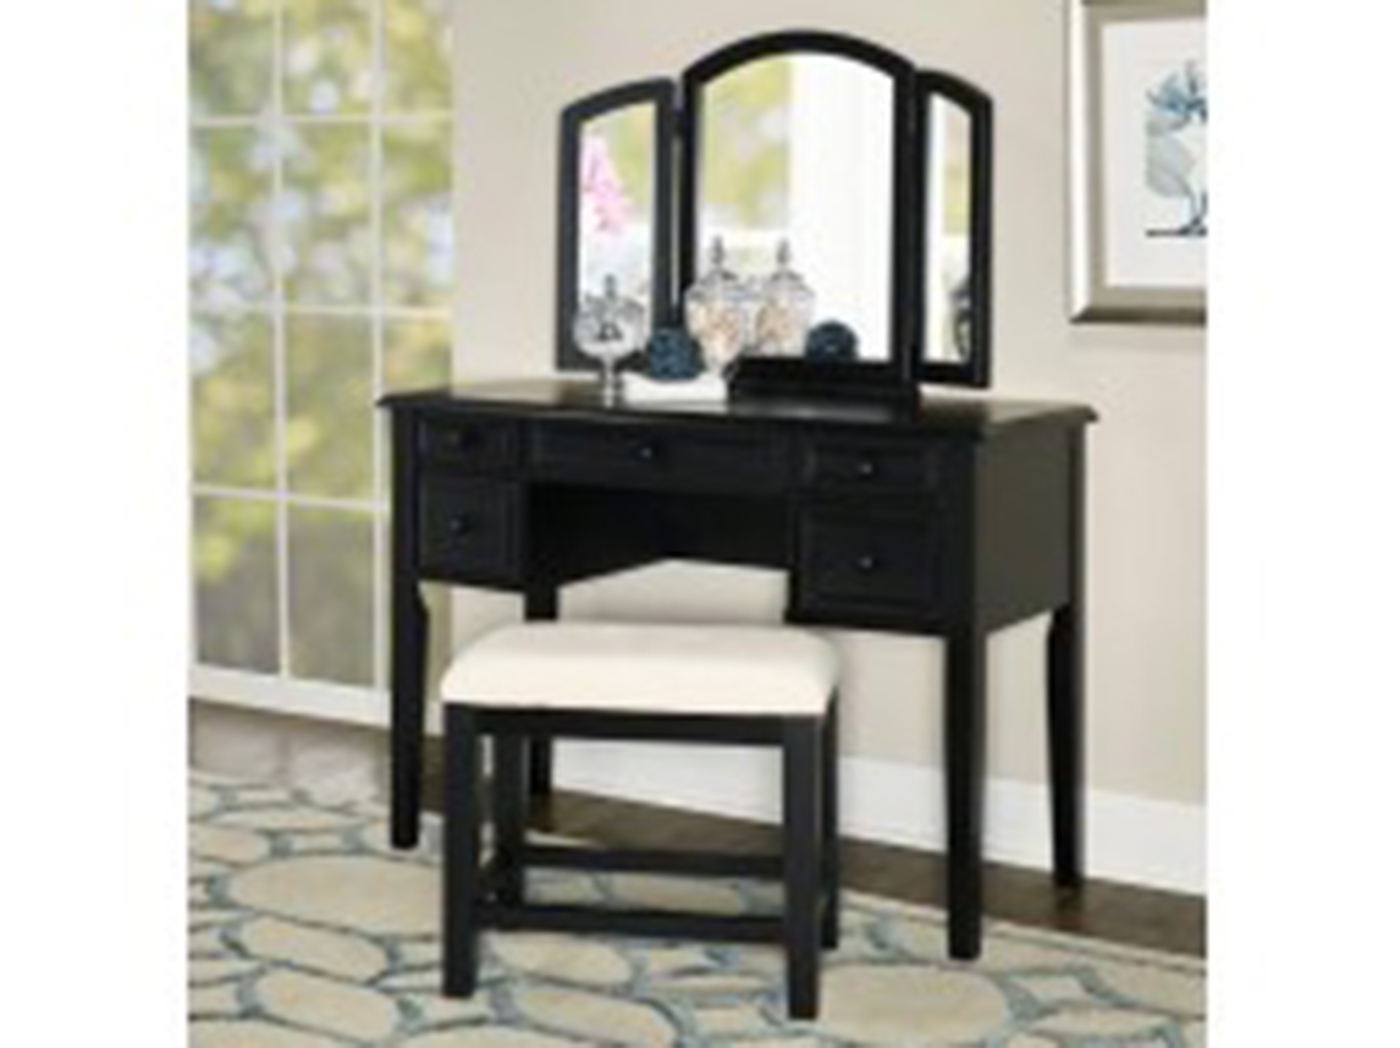 Antique Black Vanity and Bench